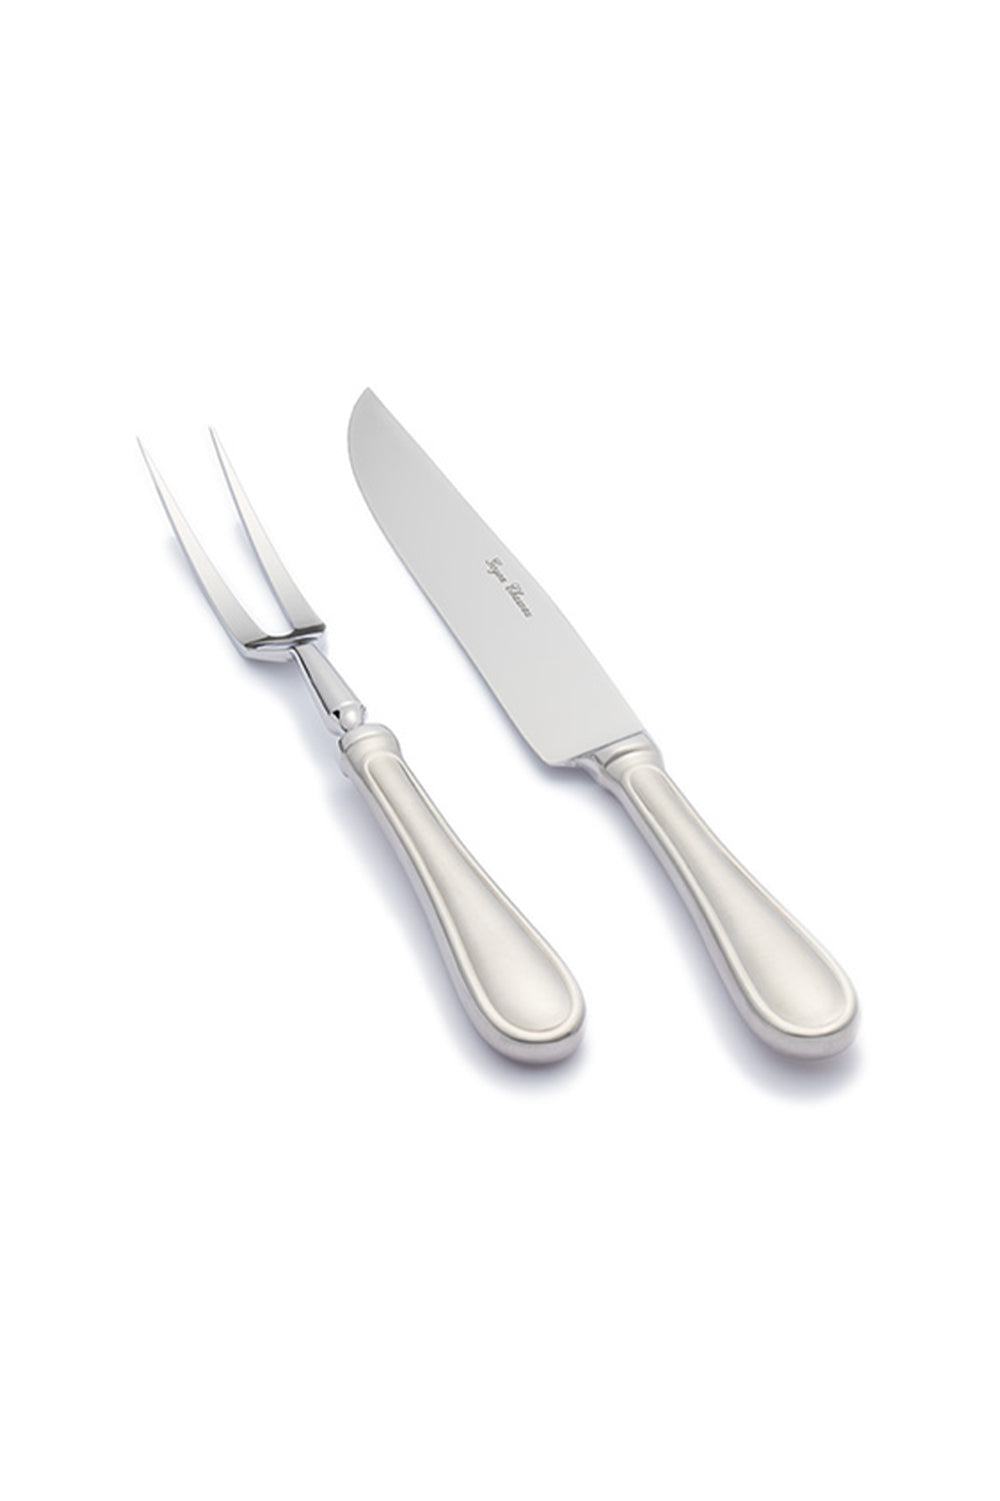 Meat carving knife and fork set, stainless steel, 100% handcrafted in France